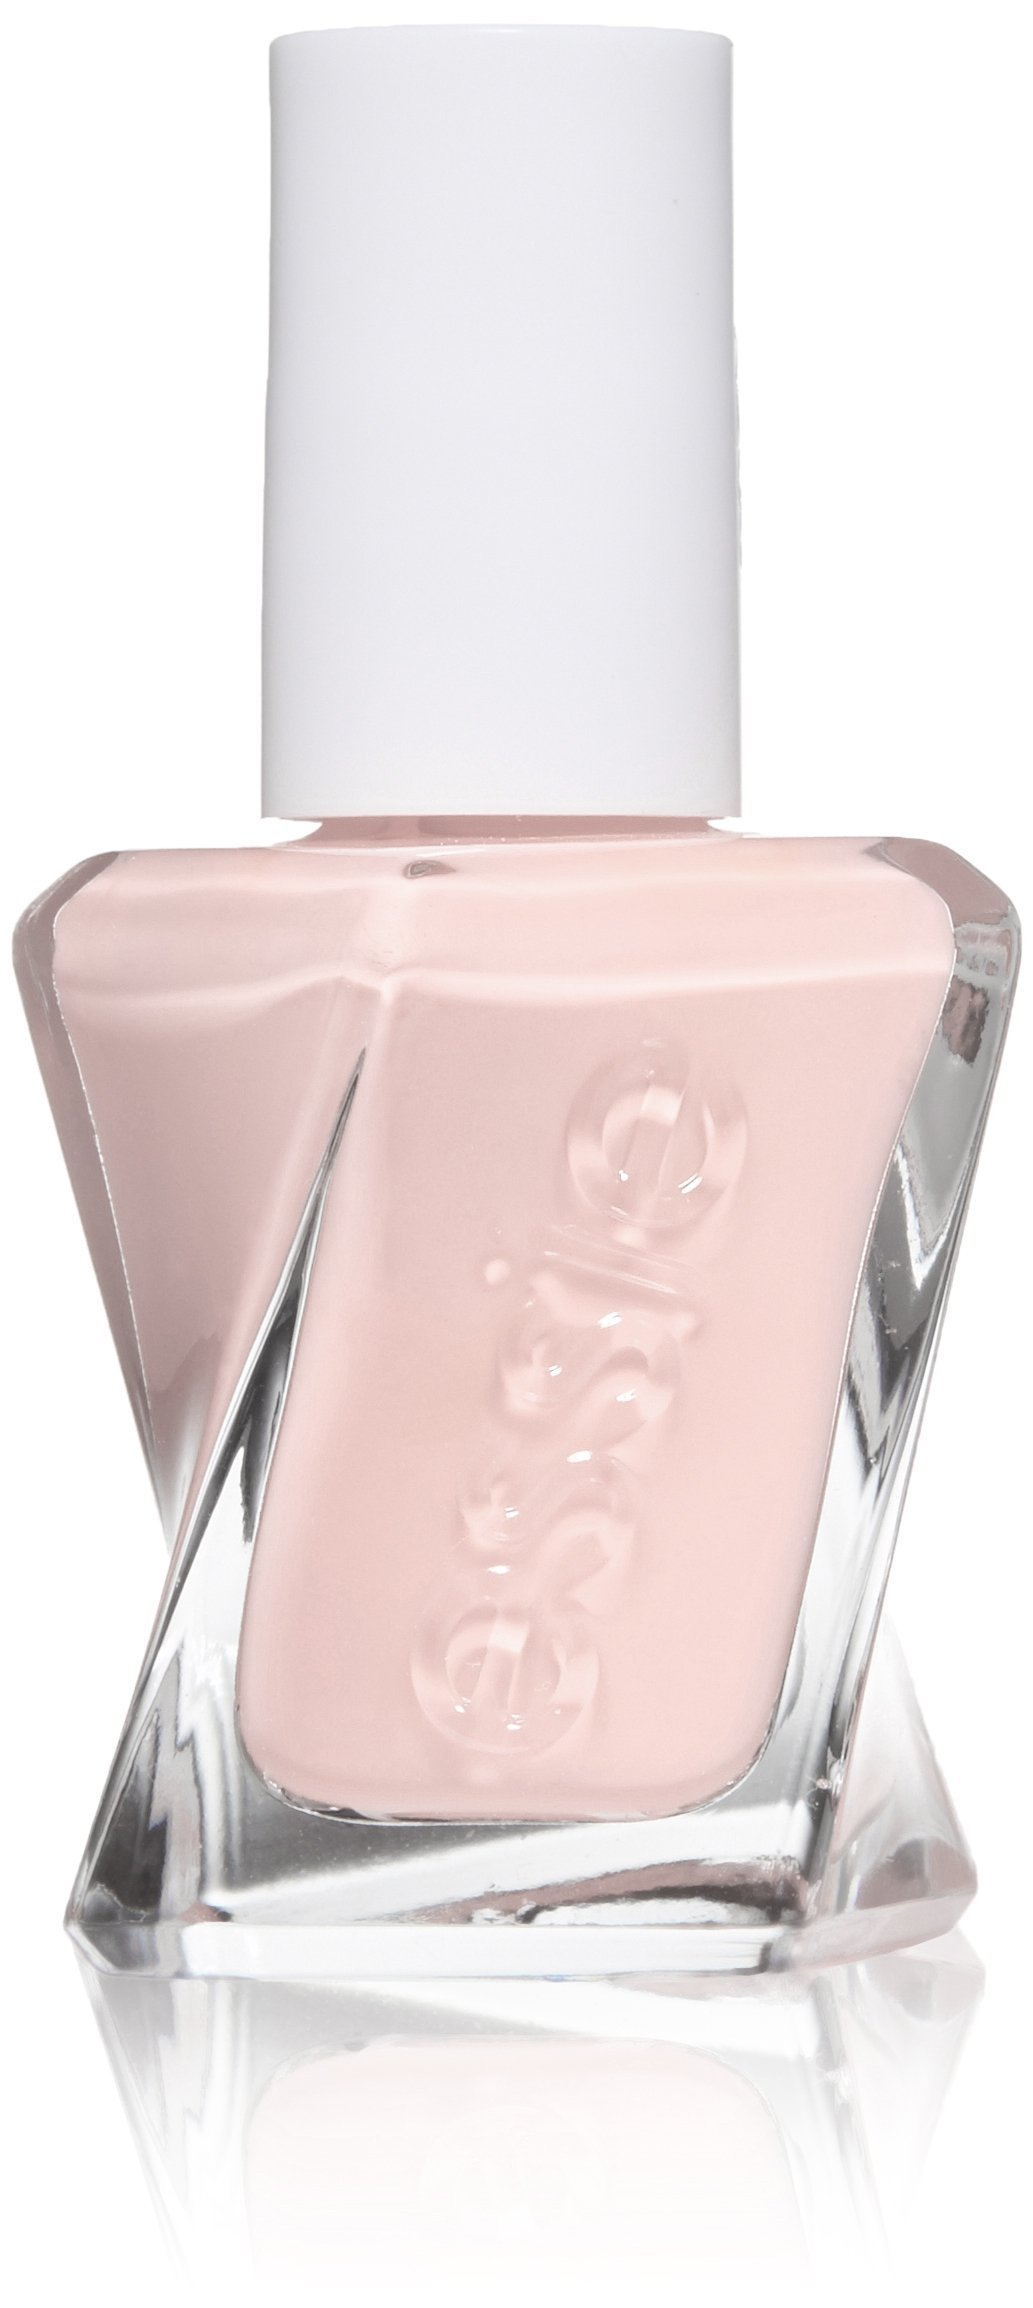 Amazon.com : essie gel couture nail polish, pre-show jitters, white ...